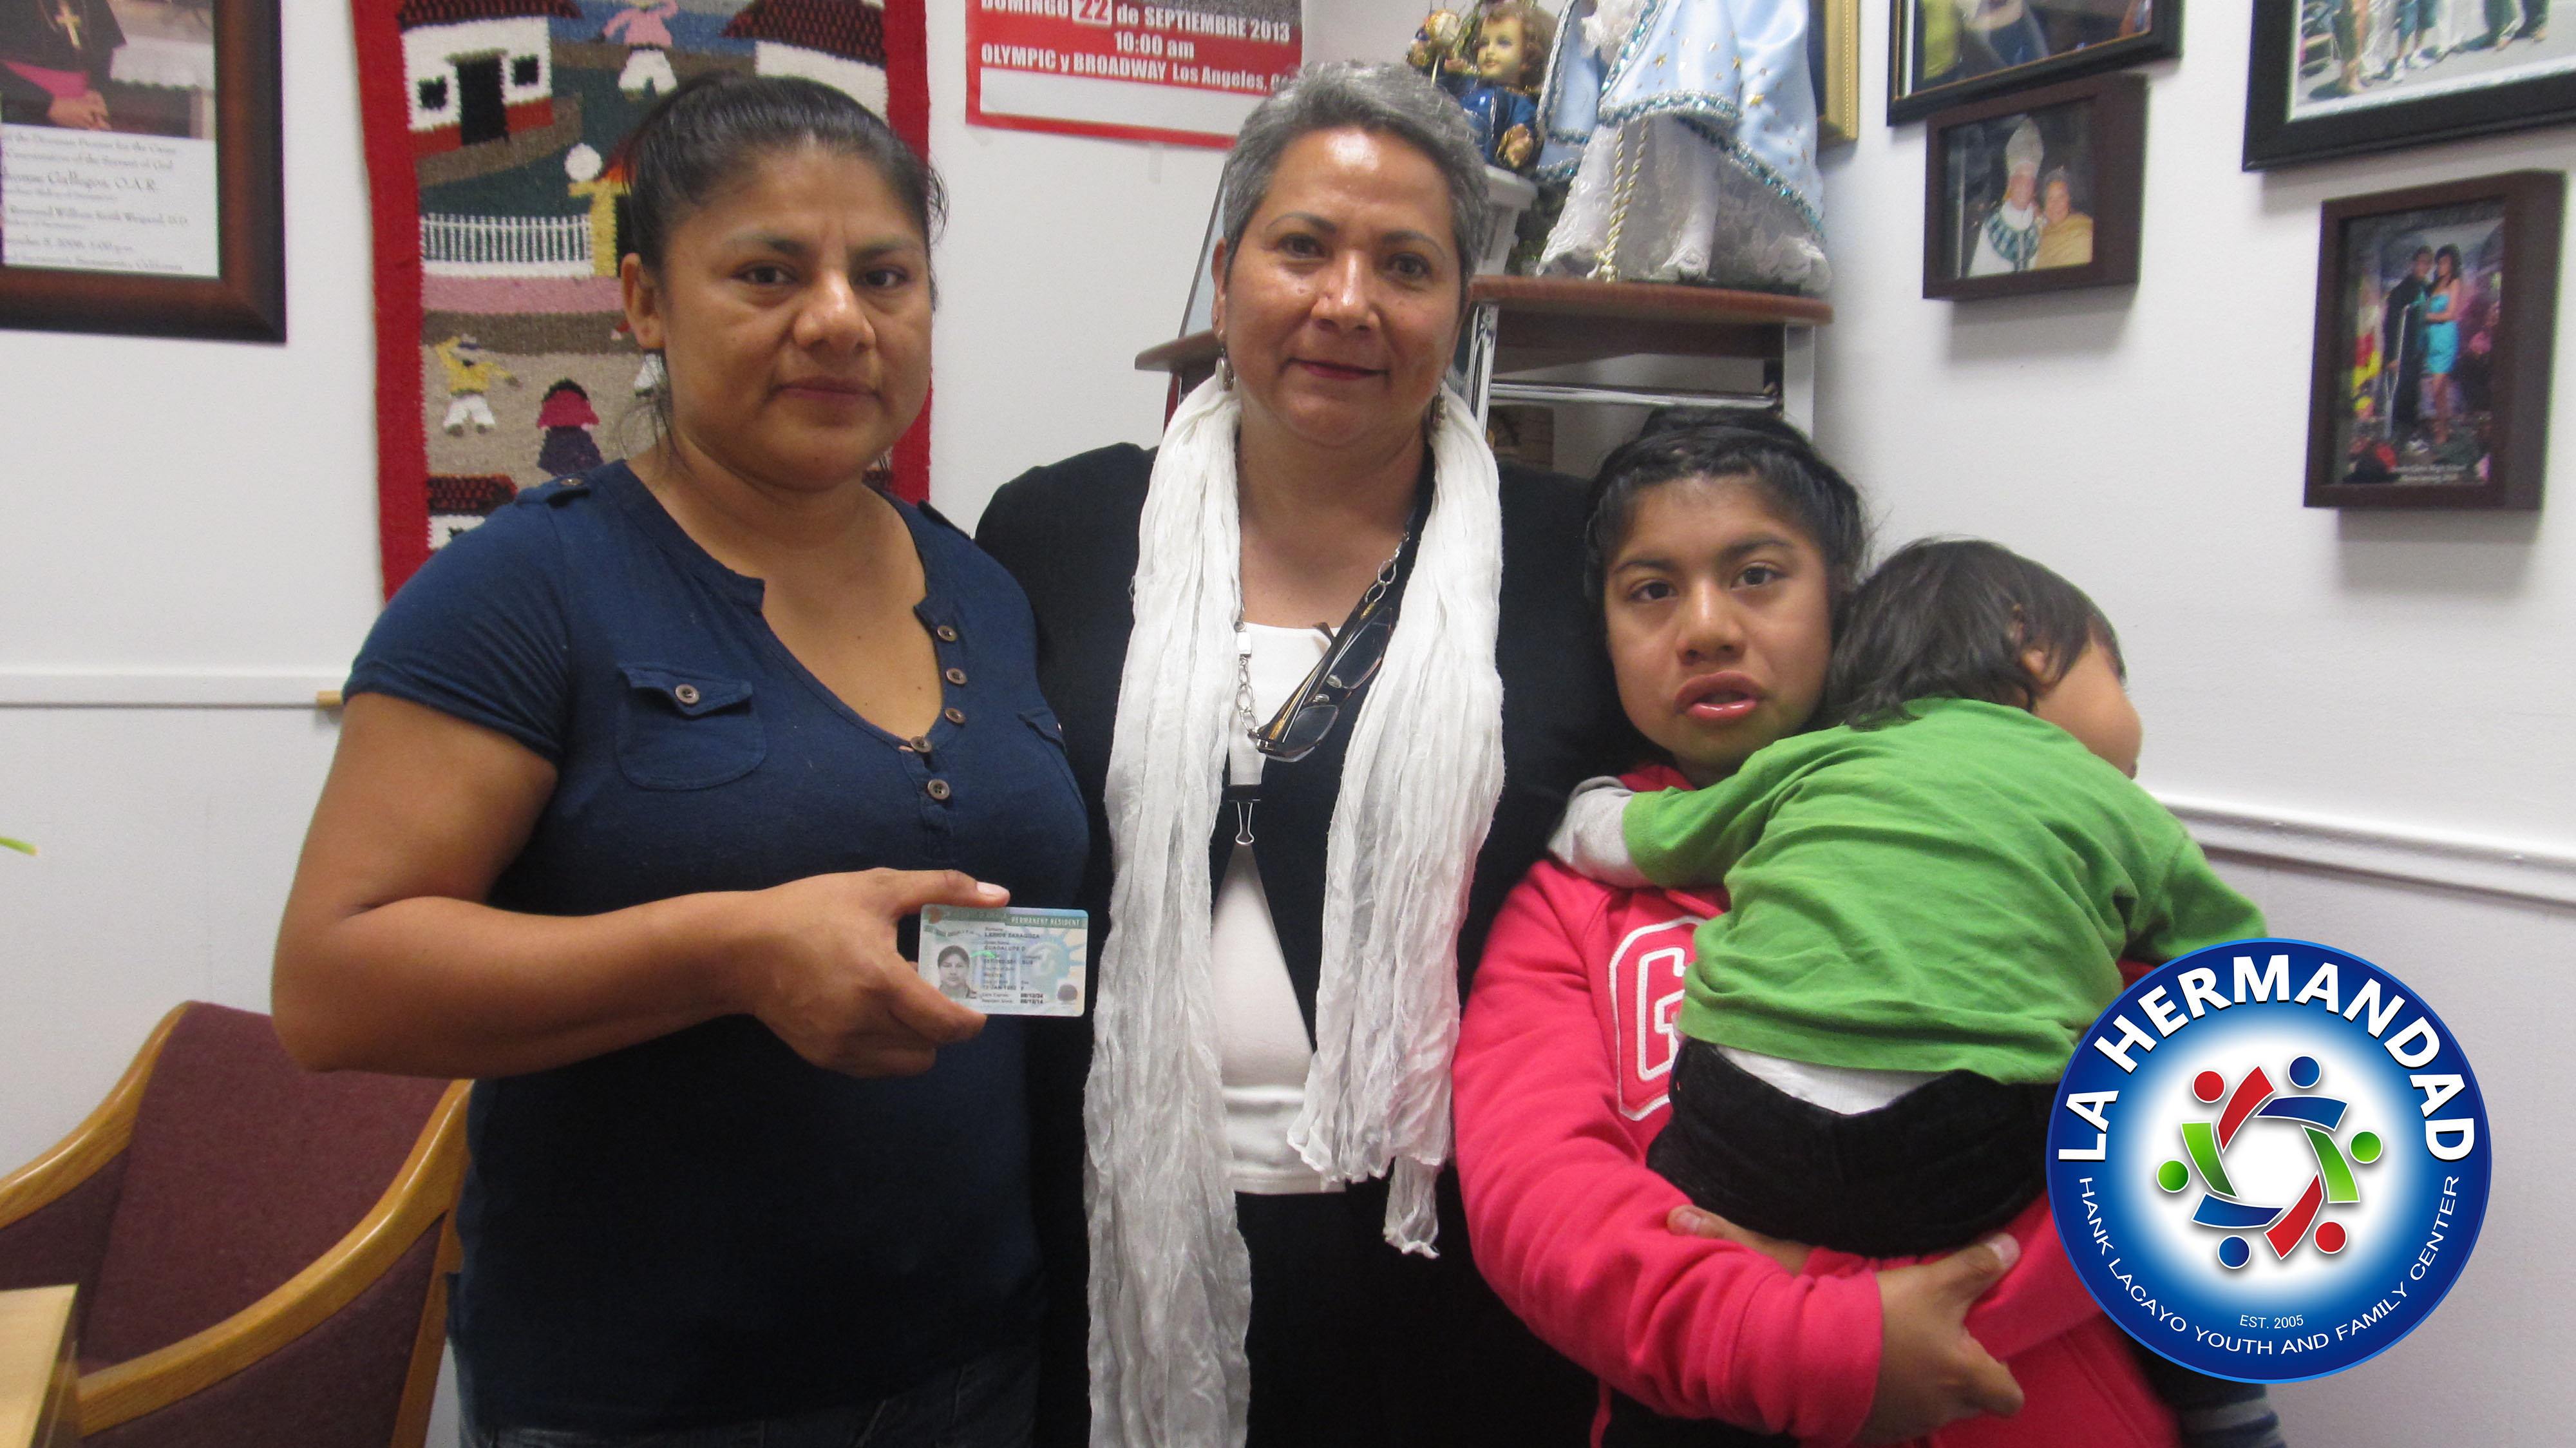 Guadalupe Larios came to La Hermandad to obtain services on U-VISA 2011. Ms Larios recently received her Permanent Resident card. withing 3 years she will be eligible to apply for her Citizenship.